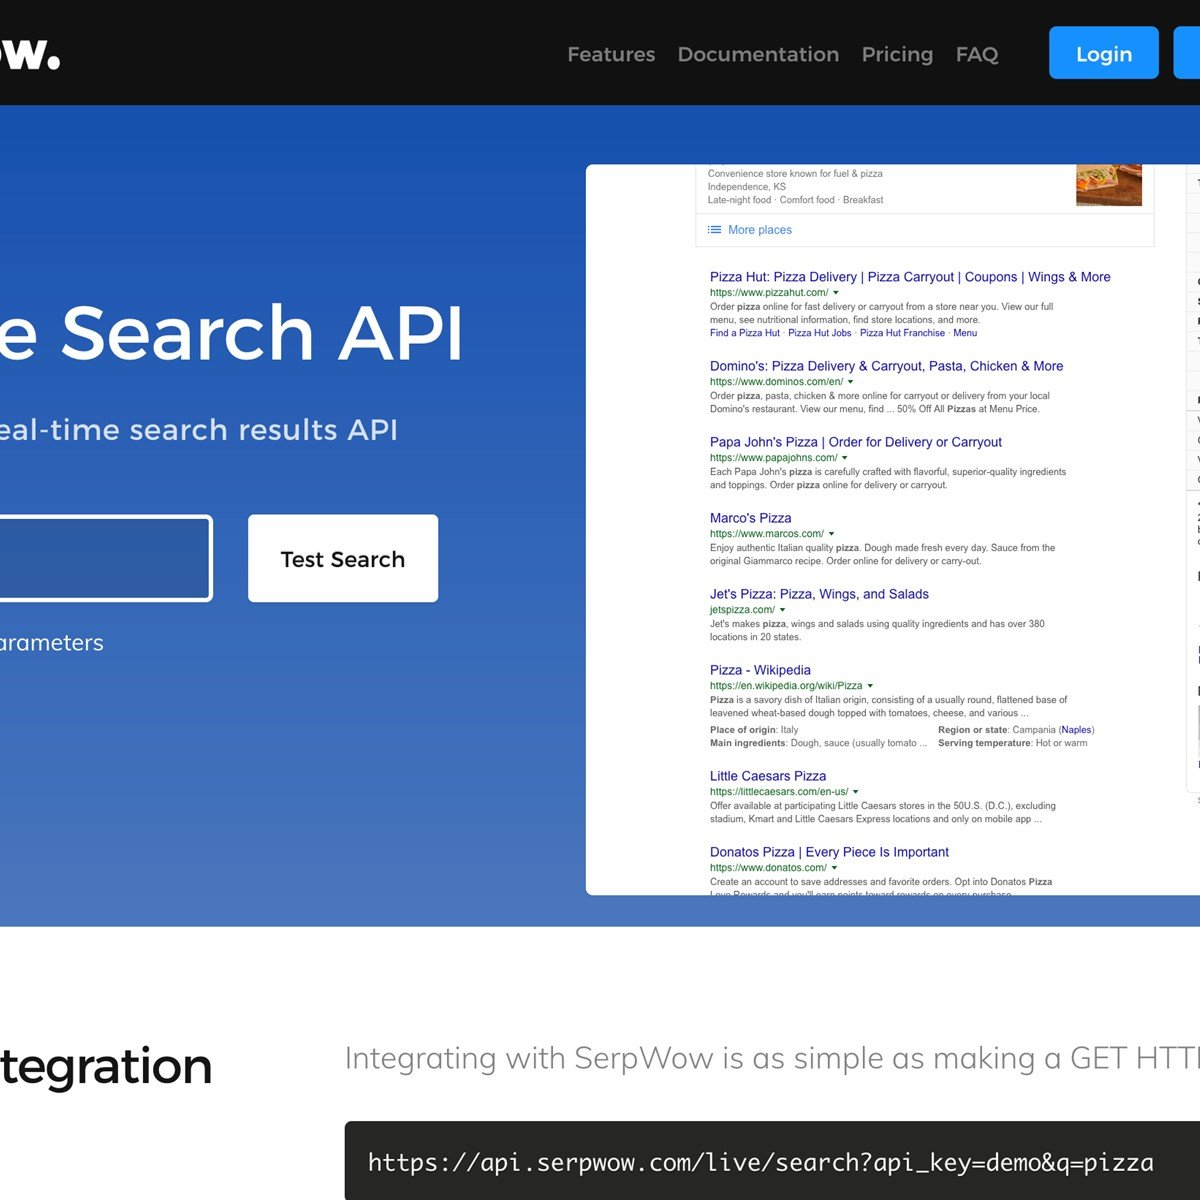 SerpWow com - Google Search Results API Alternatives and